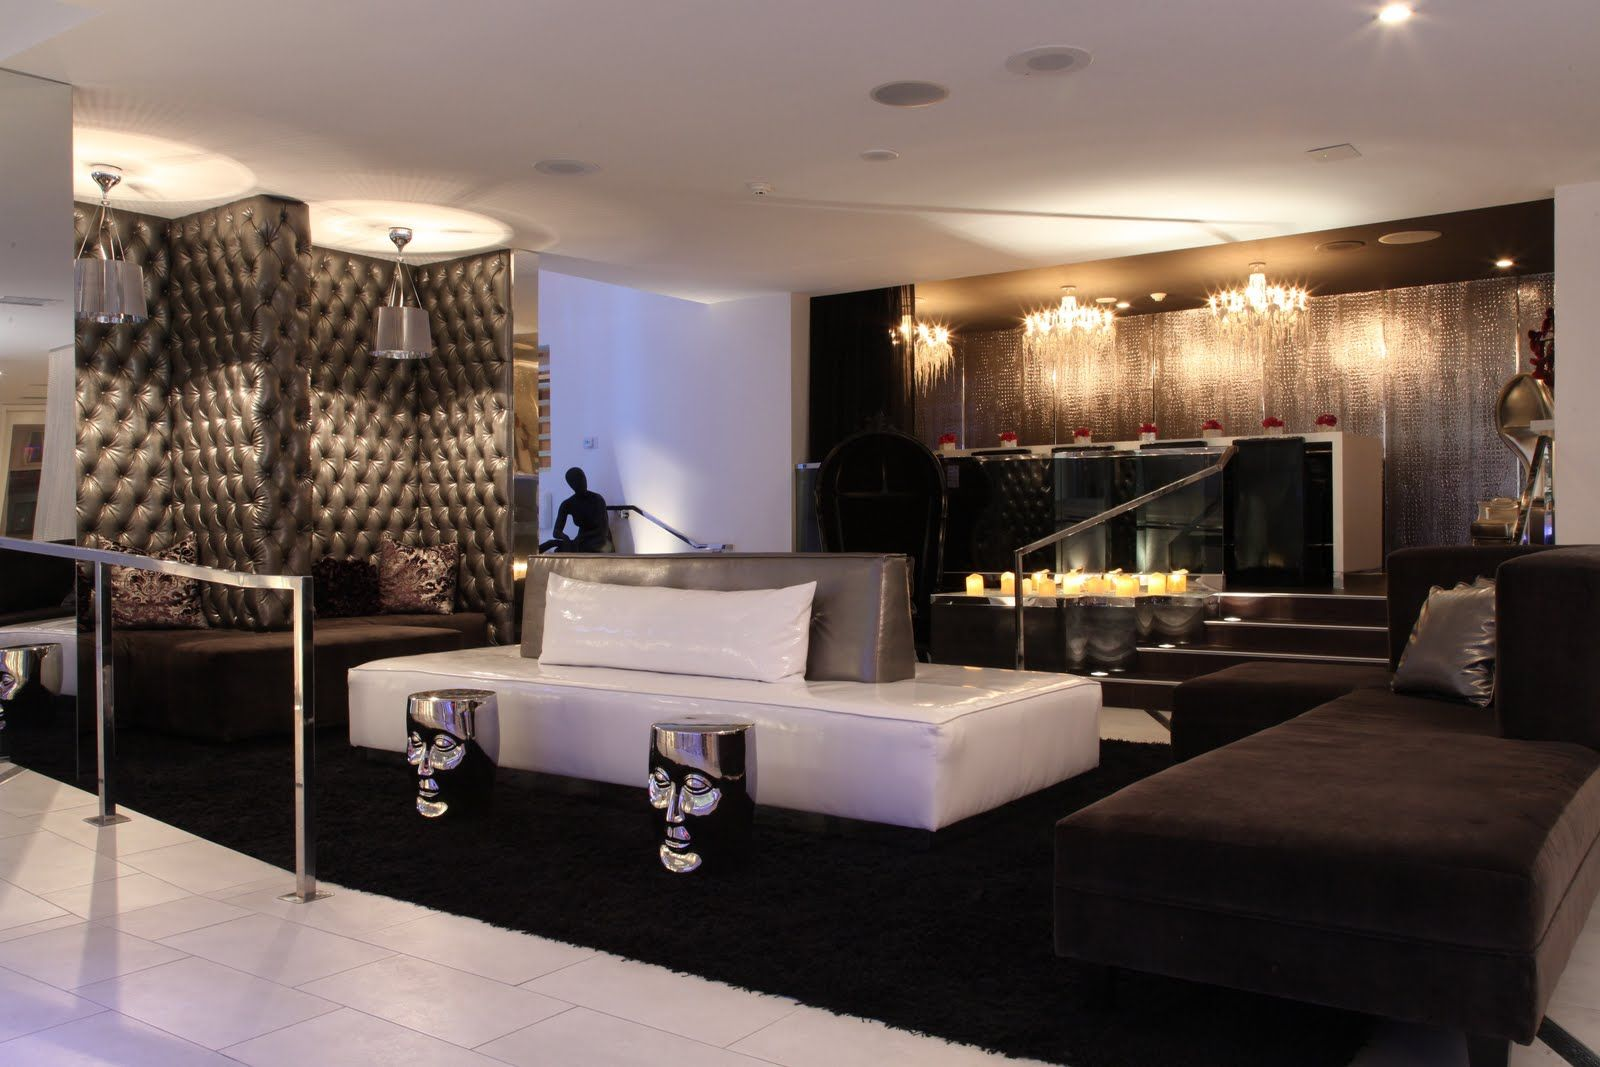 Rumor Boutique Hotel In Las Vegas Is Fabulous Modern Glam With An Almost Palm Springs Vibe